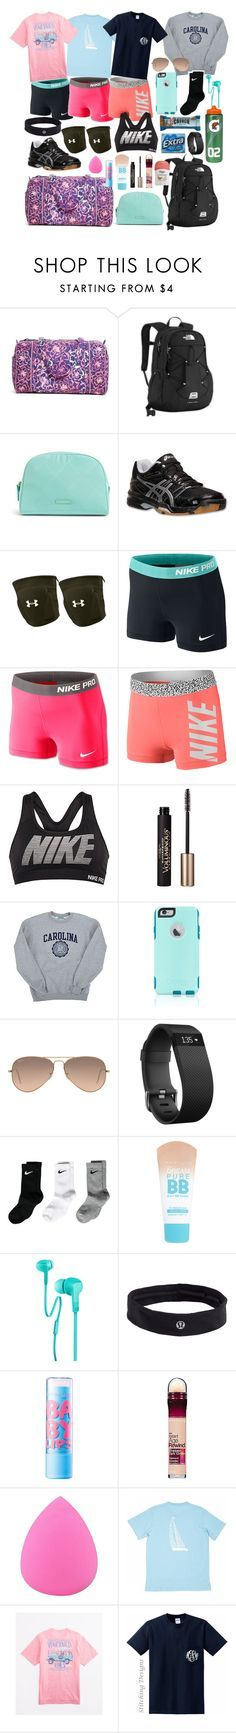 """""""Volleyball Camp Essentials"""" by whalesandprints ❤ liked on Polyvore featuring Vera Bradley, The North Face, Asics, Under Armour, NIKE, L'Oréal Paris, Champion, OtterBox, Ray-Ban and Fitbit"""